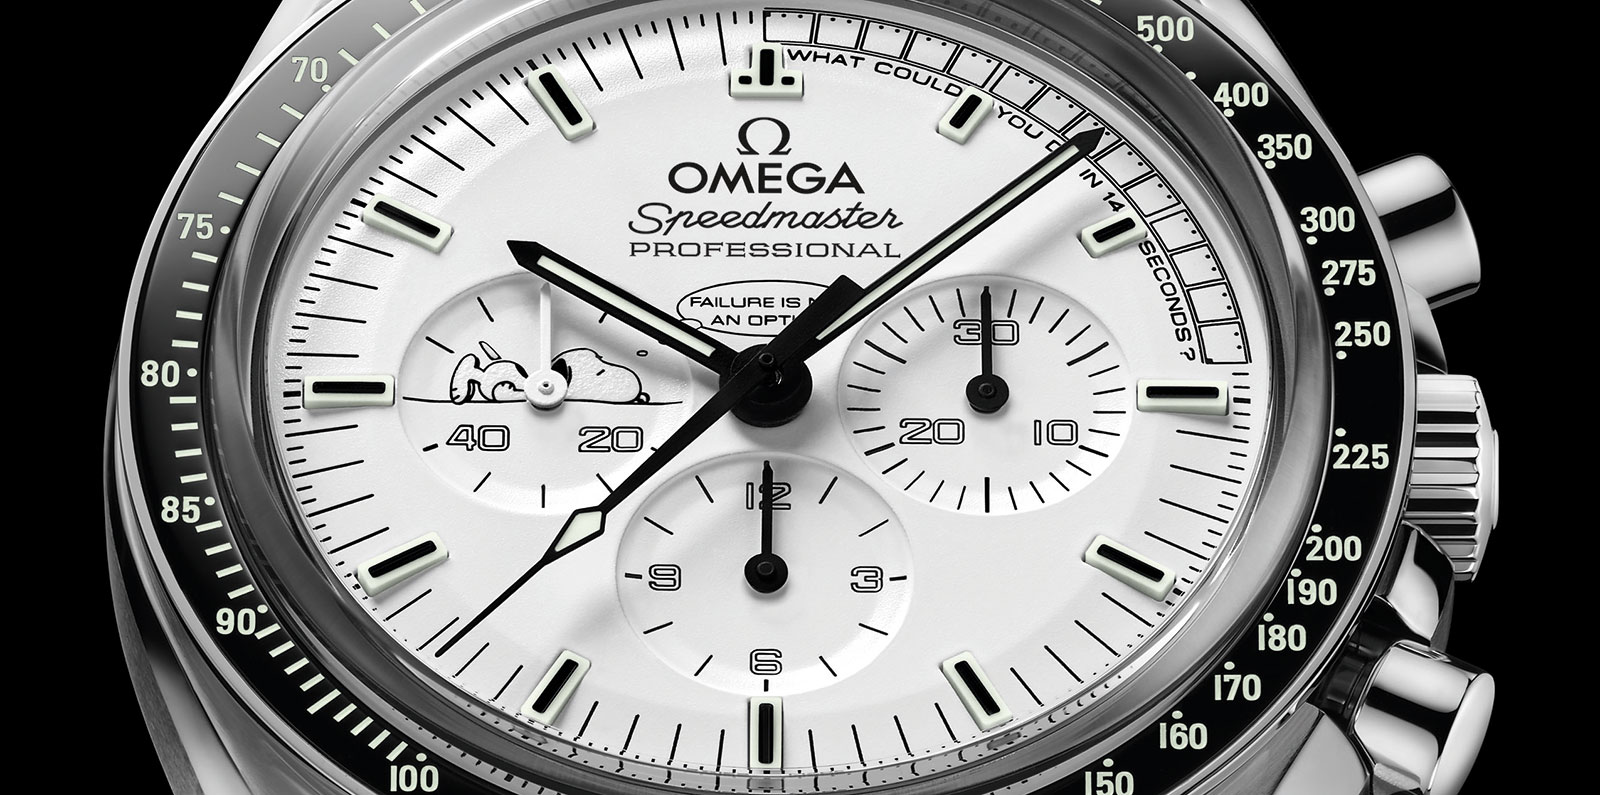 Introducing the omega speedmaster apollo 13 silver snoopy award with specs and price sjx watches for Snoopy watches